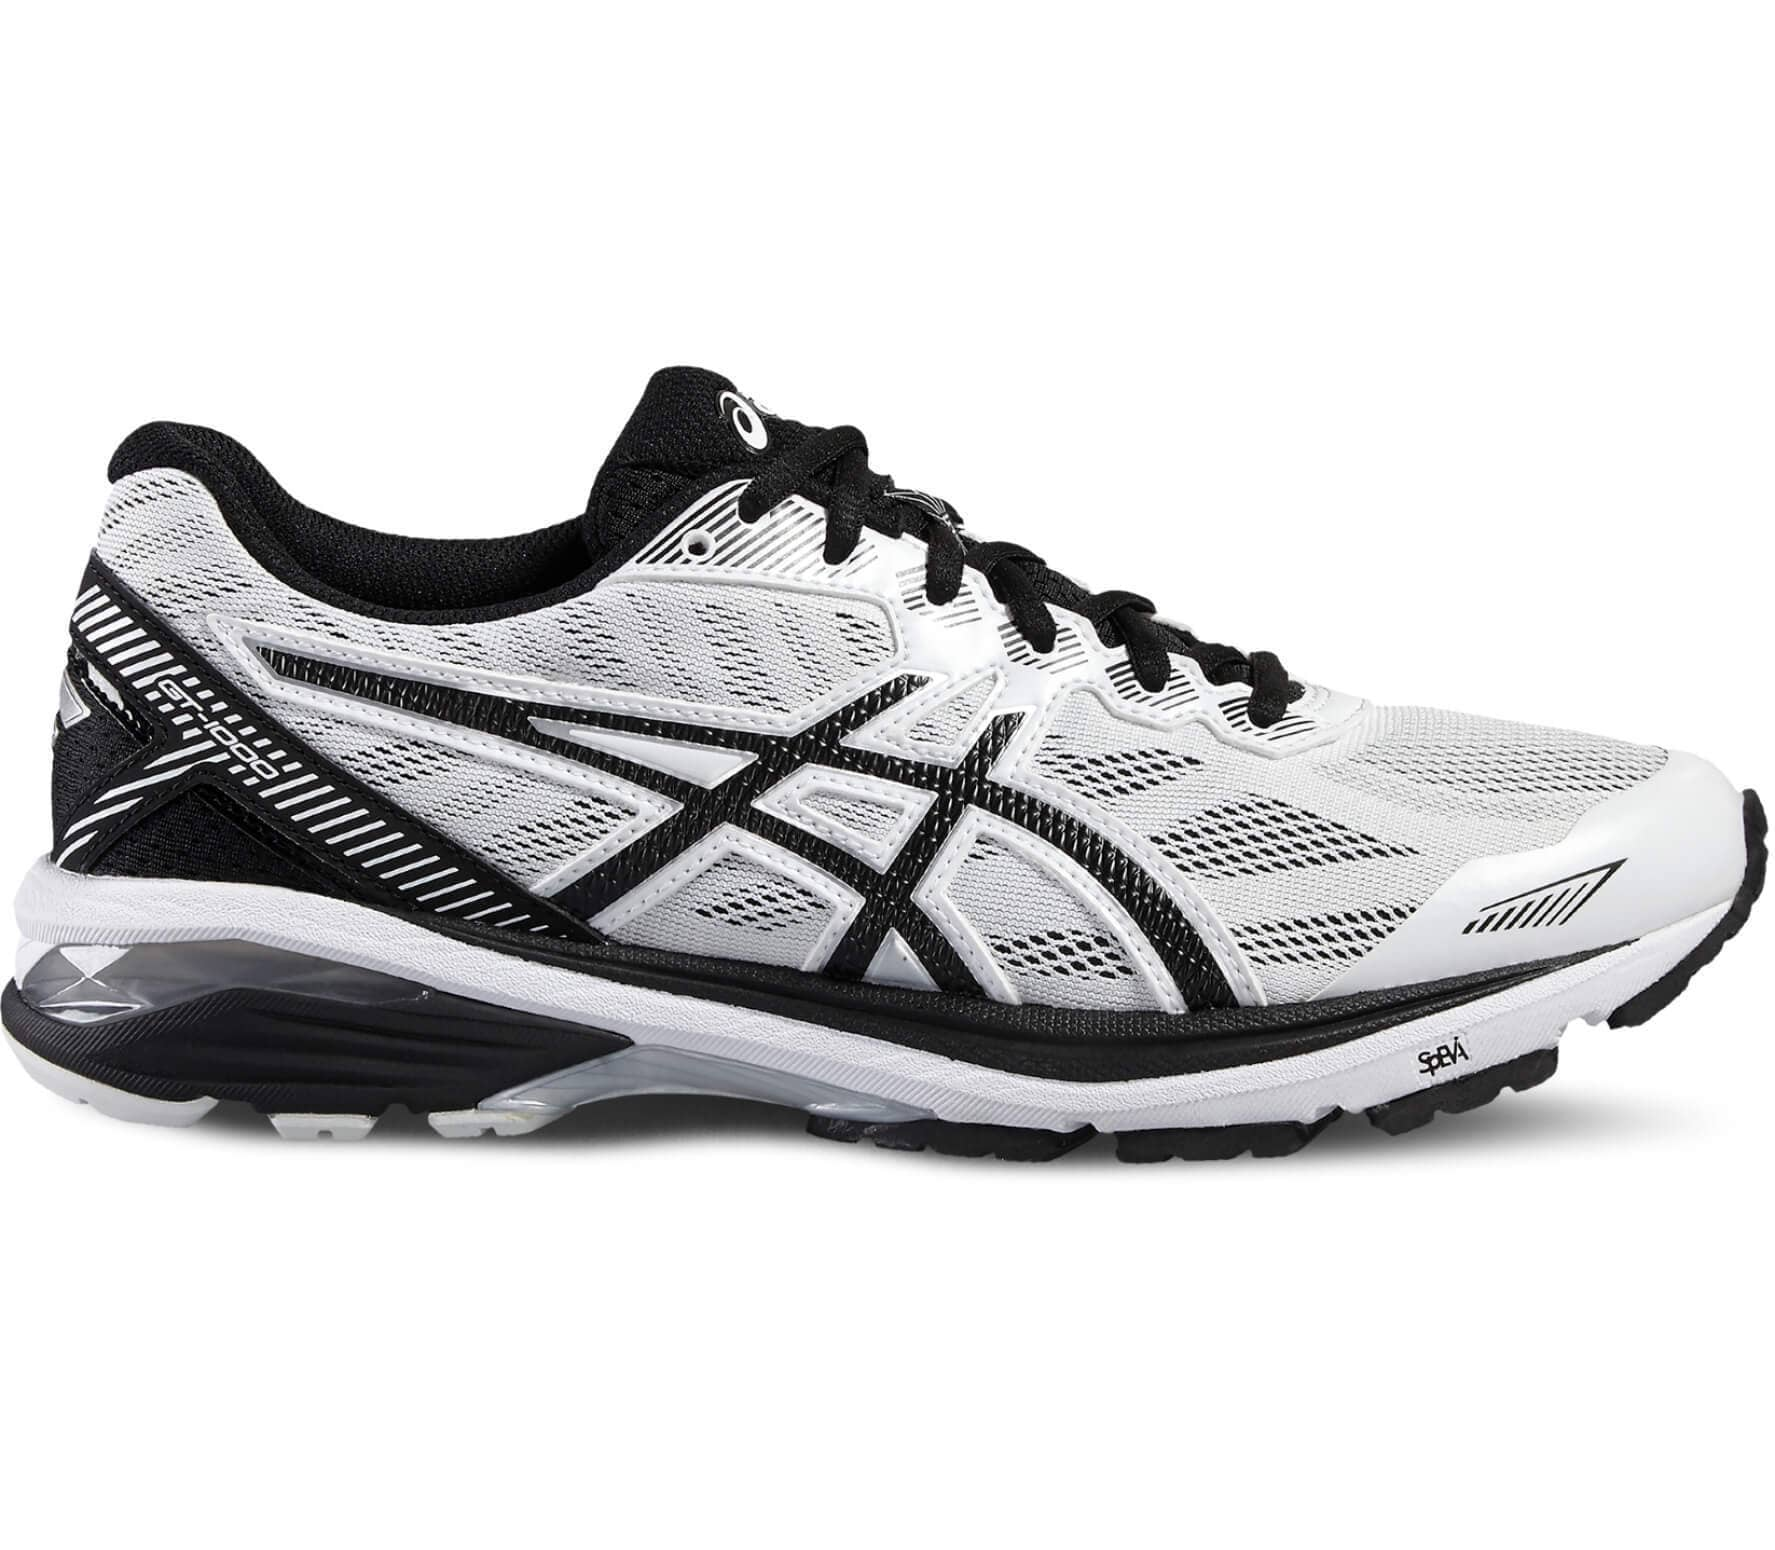 ASICS GT 1000 5 Men's Running Shoes | Products | Running